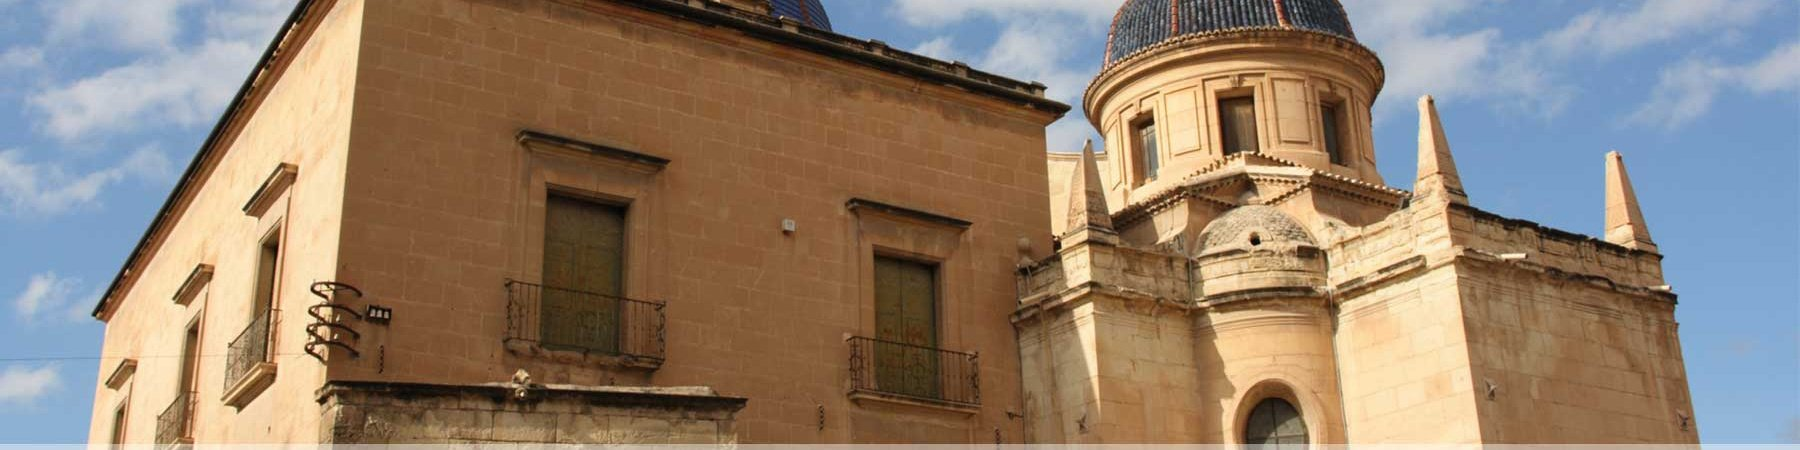 Elche: Our city - AG Express Elche Sercotel Hotel